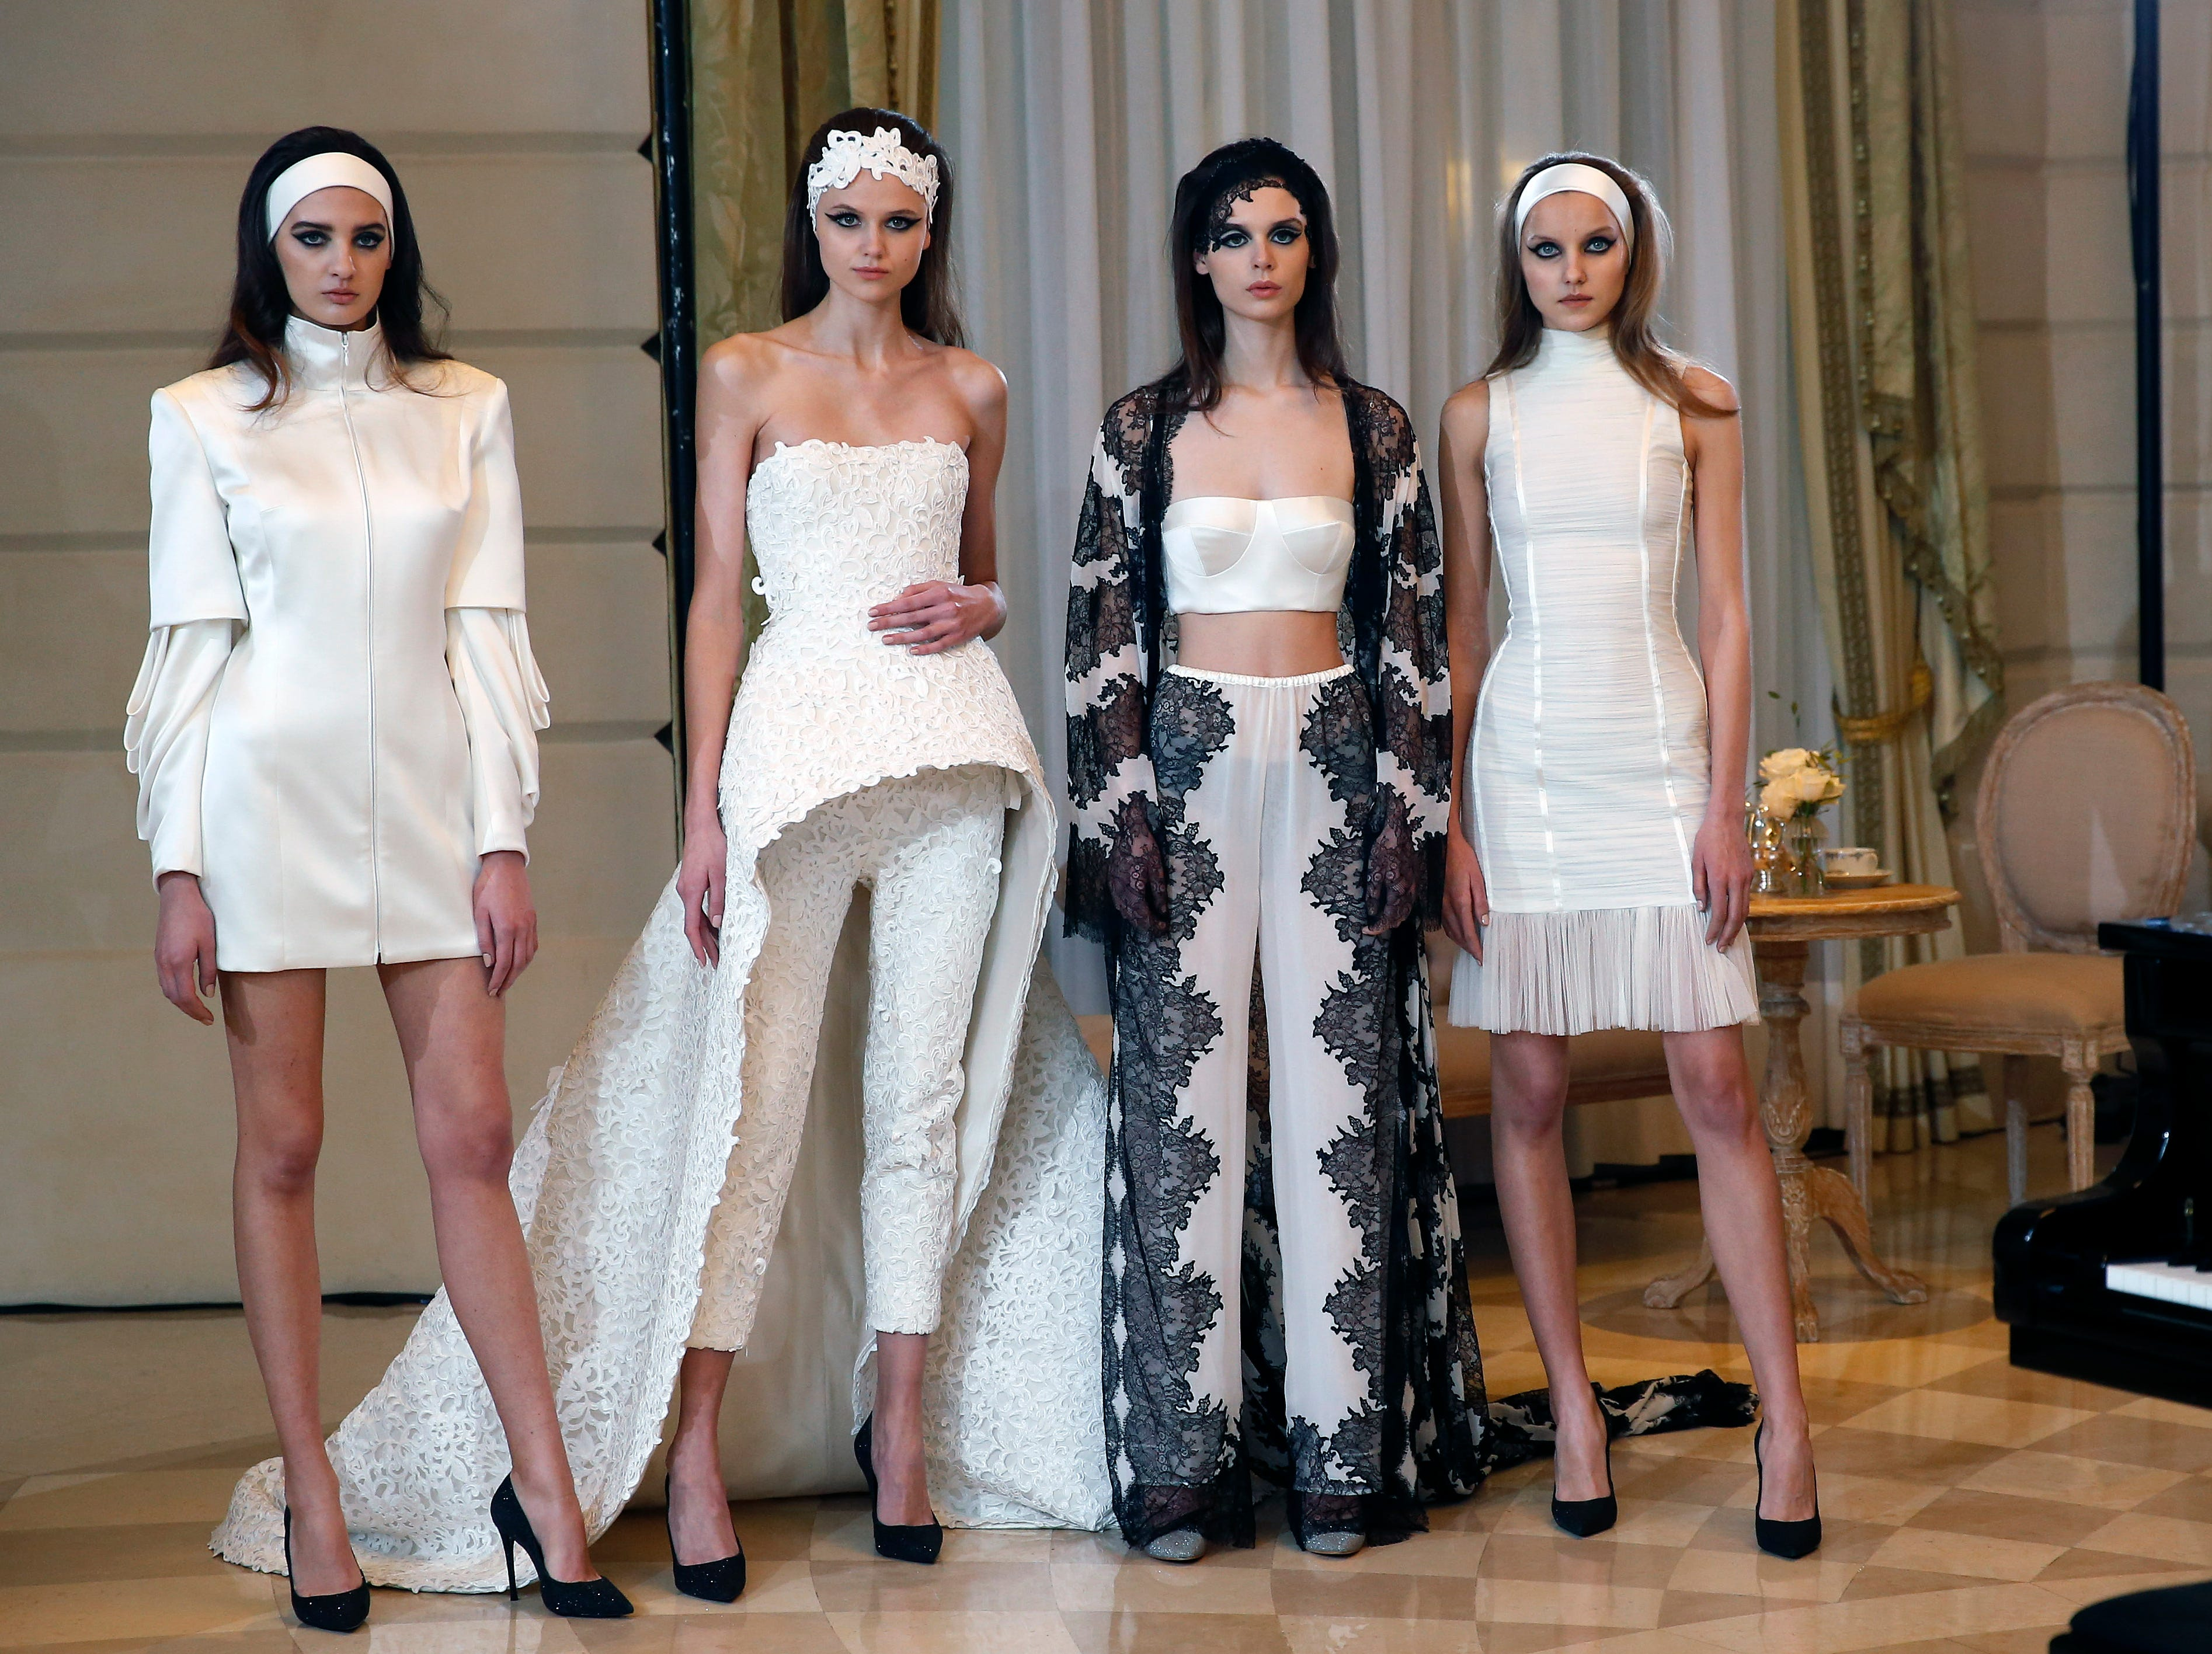 Models showcase designs by Atelier August Getty during their Spring Summer 2019 Presentation as part of Paris Fashion Week on Tuesday, Jan. 22, 2019 in Paris.